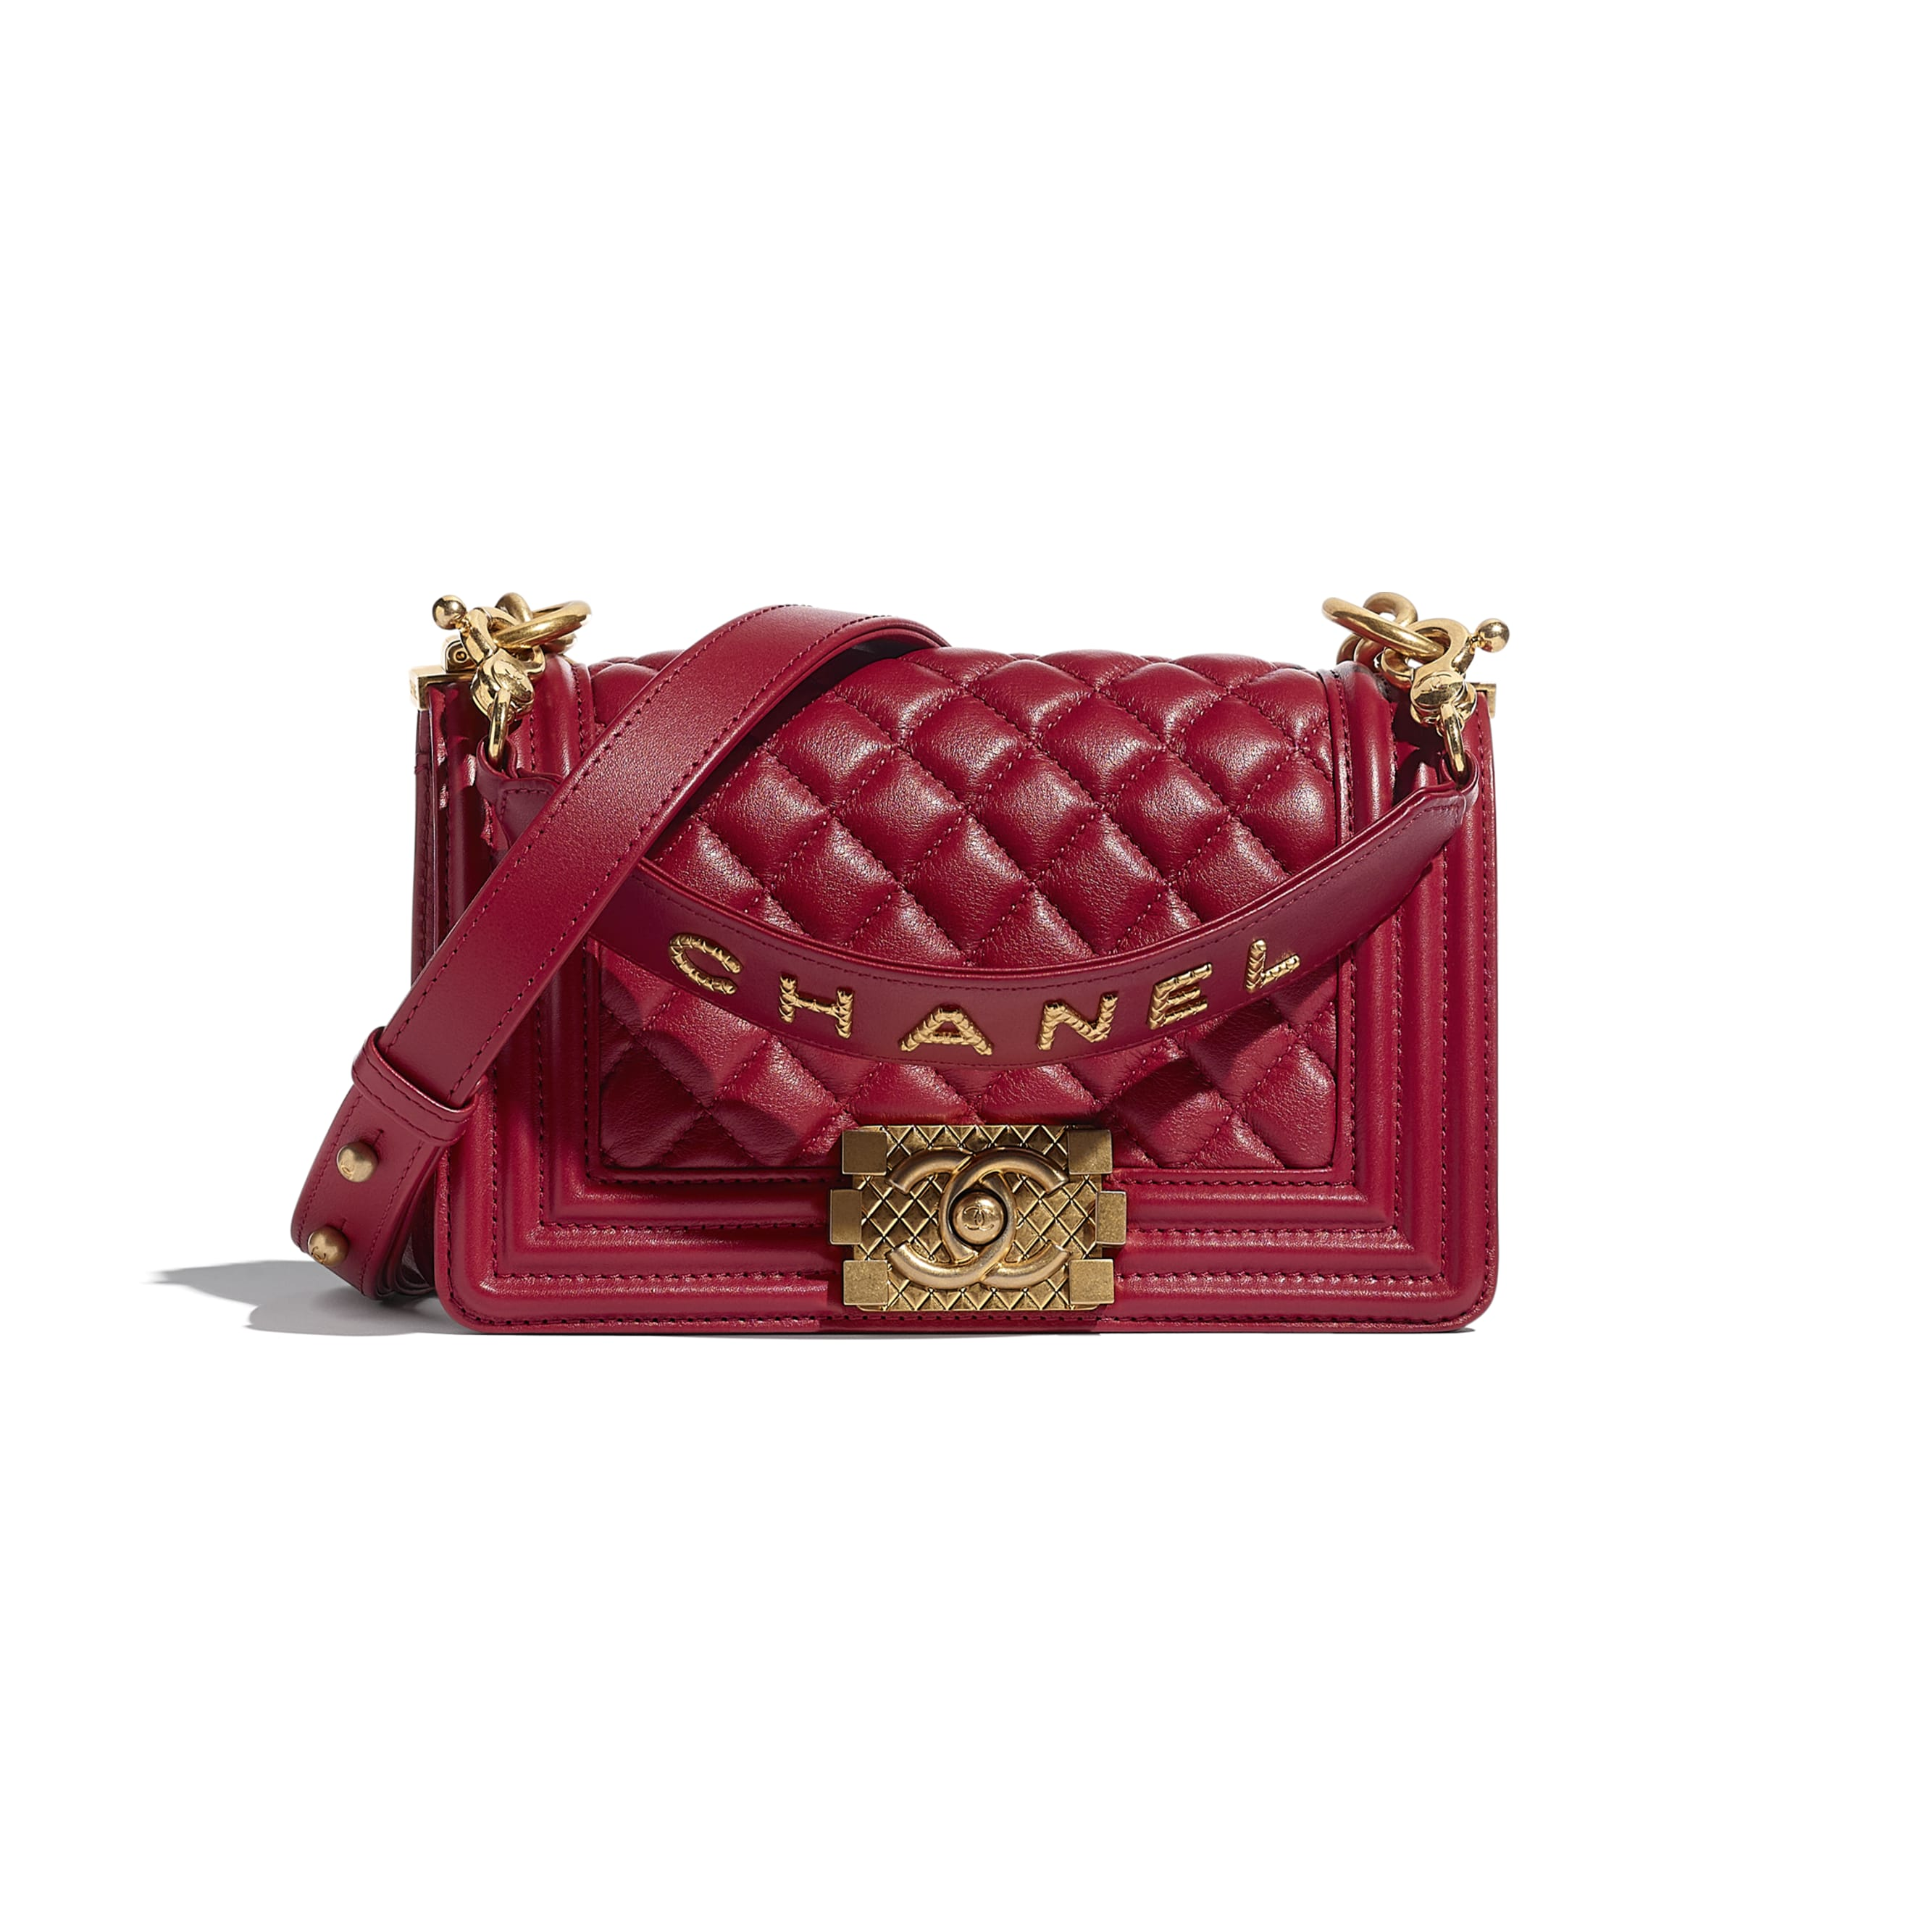 BOY CHANEL Small Flap Bag with Handle - Red - Calfskin & Gold-Tone Metal - CHANEL - Default view - see standard sized version